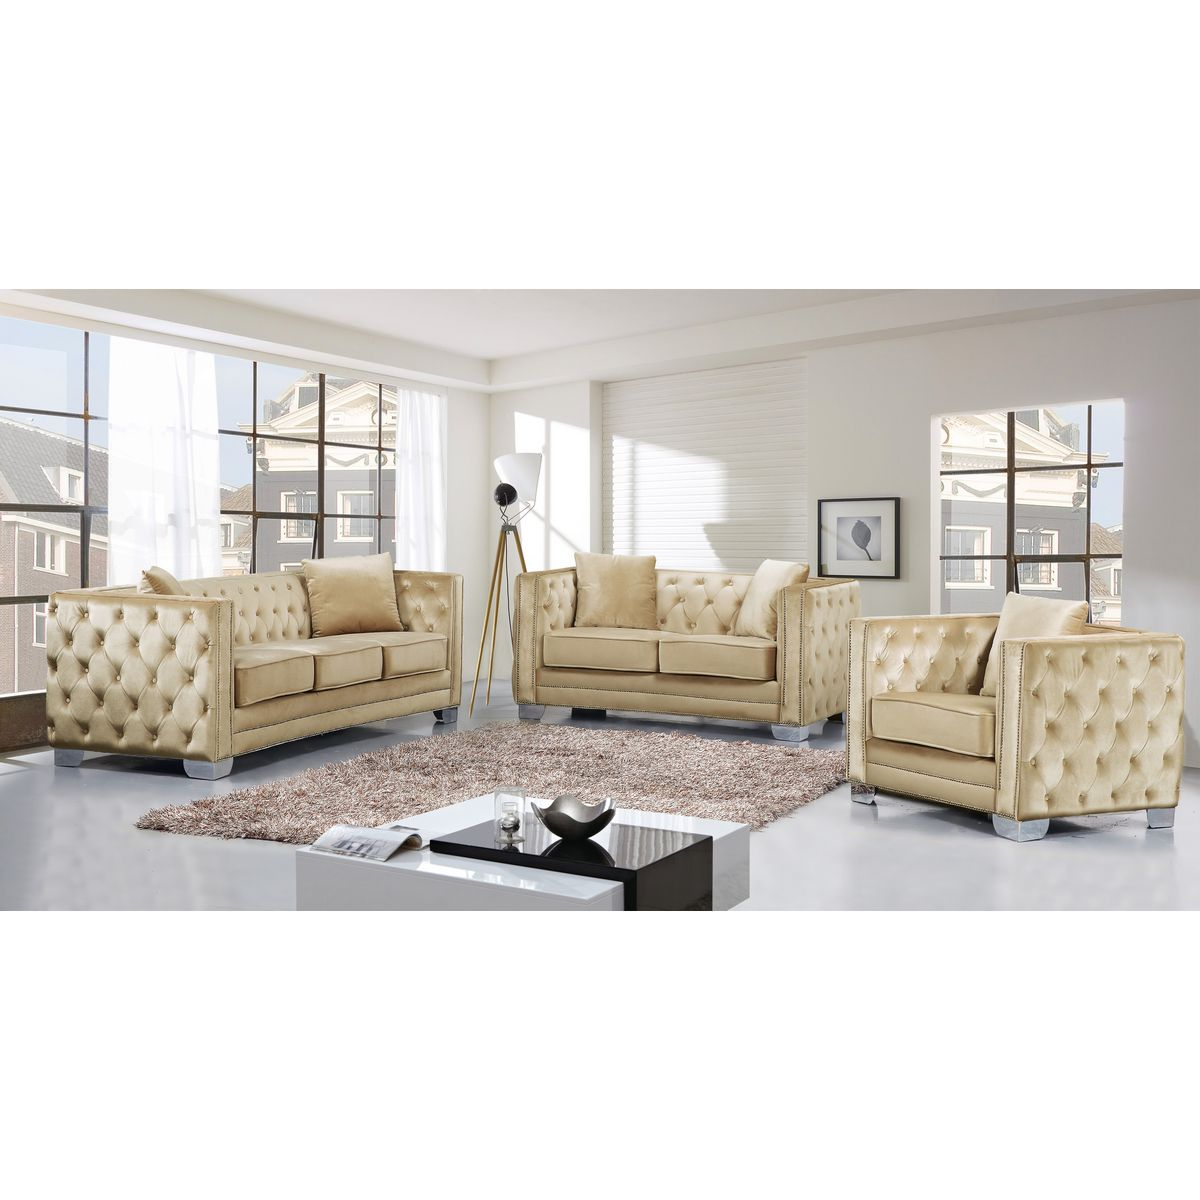 Reese Beige Velvet Sofa W Tufted Back Arms On Metal Legs By Meridian Furniture